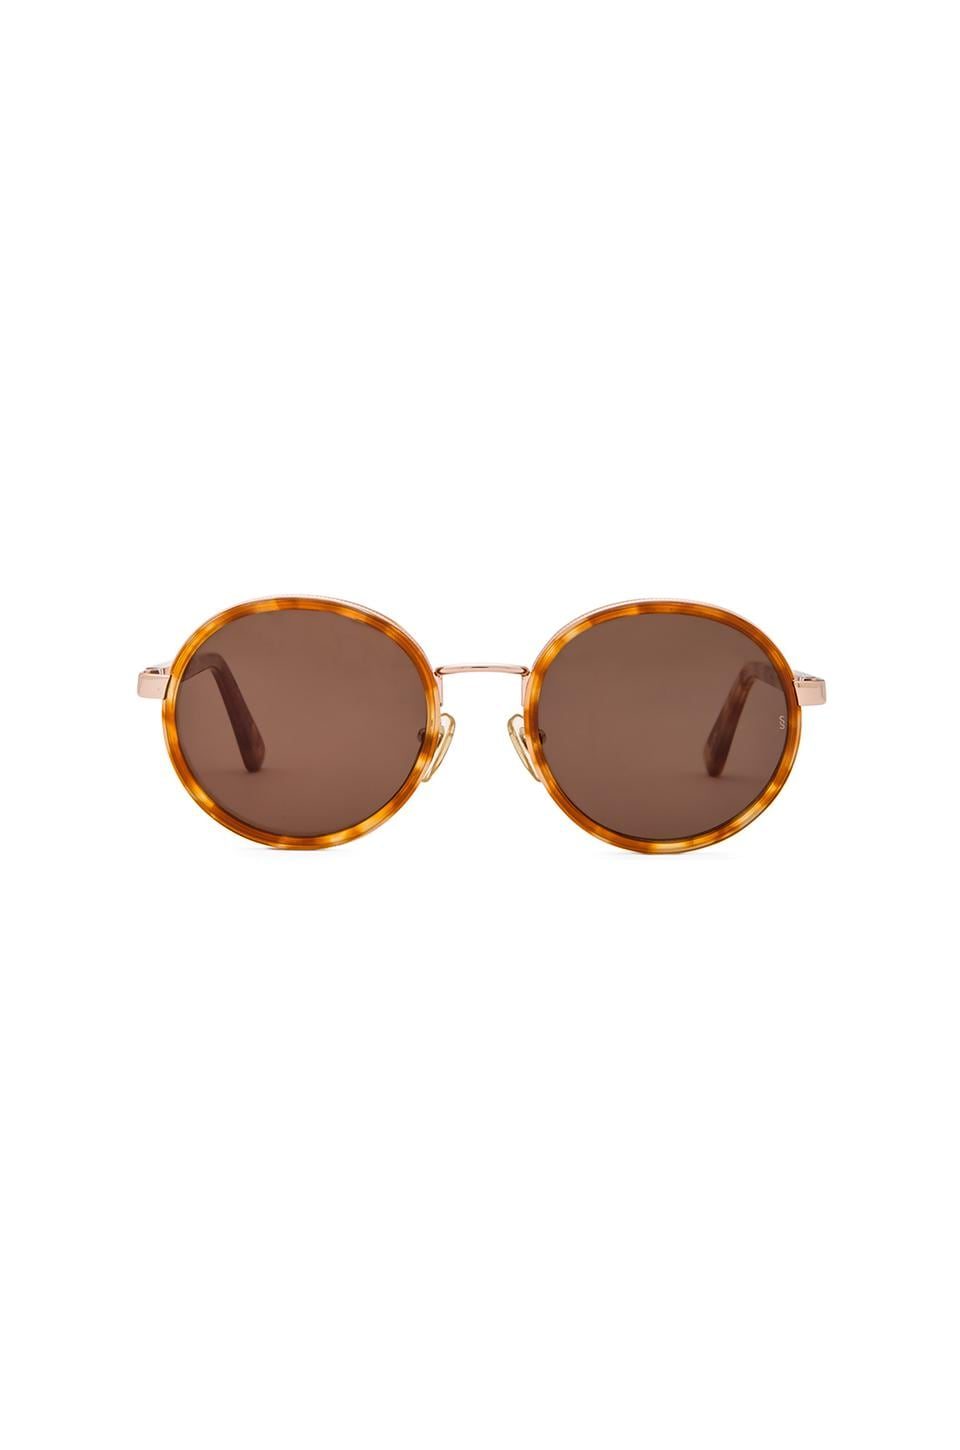 Sunday Somewhere Ned Sunglasses in Tortoise